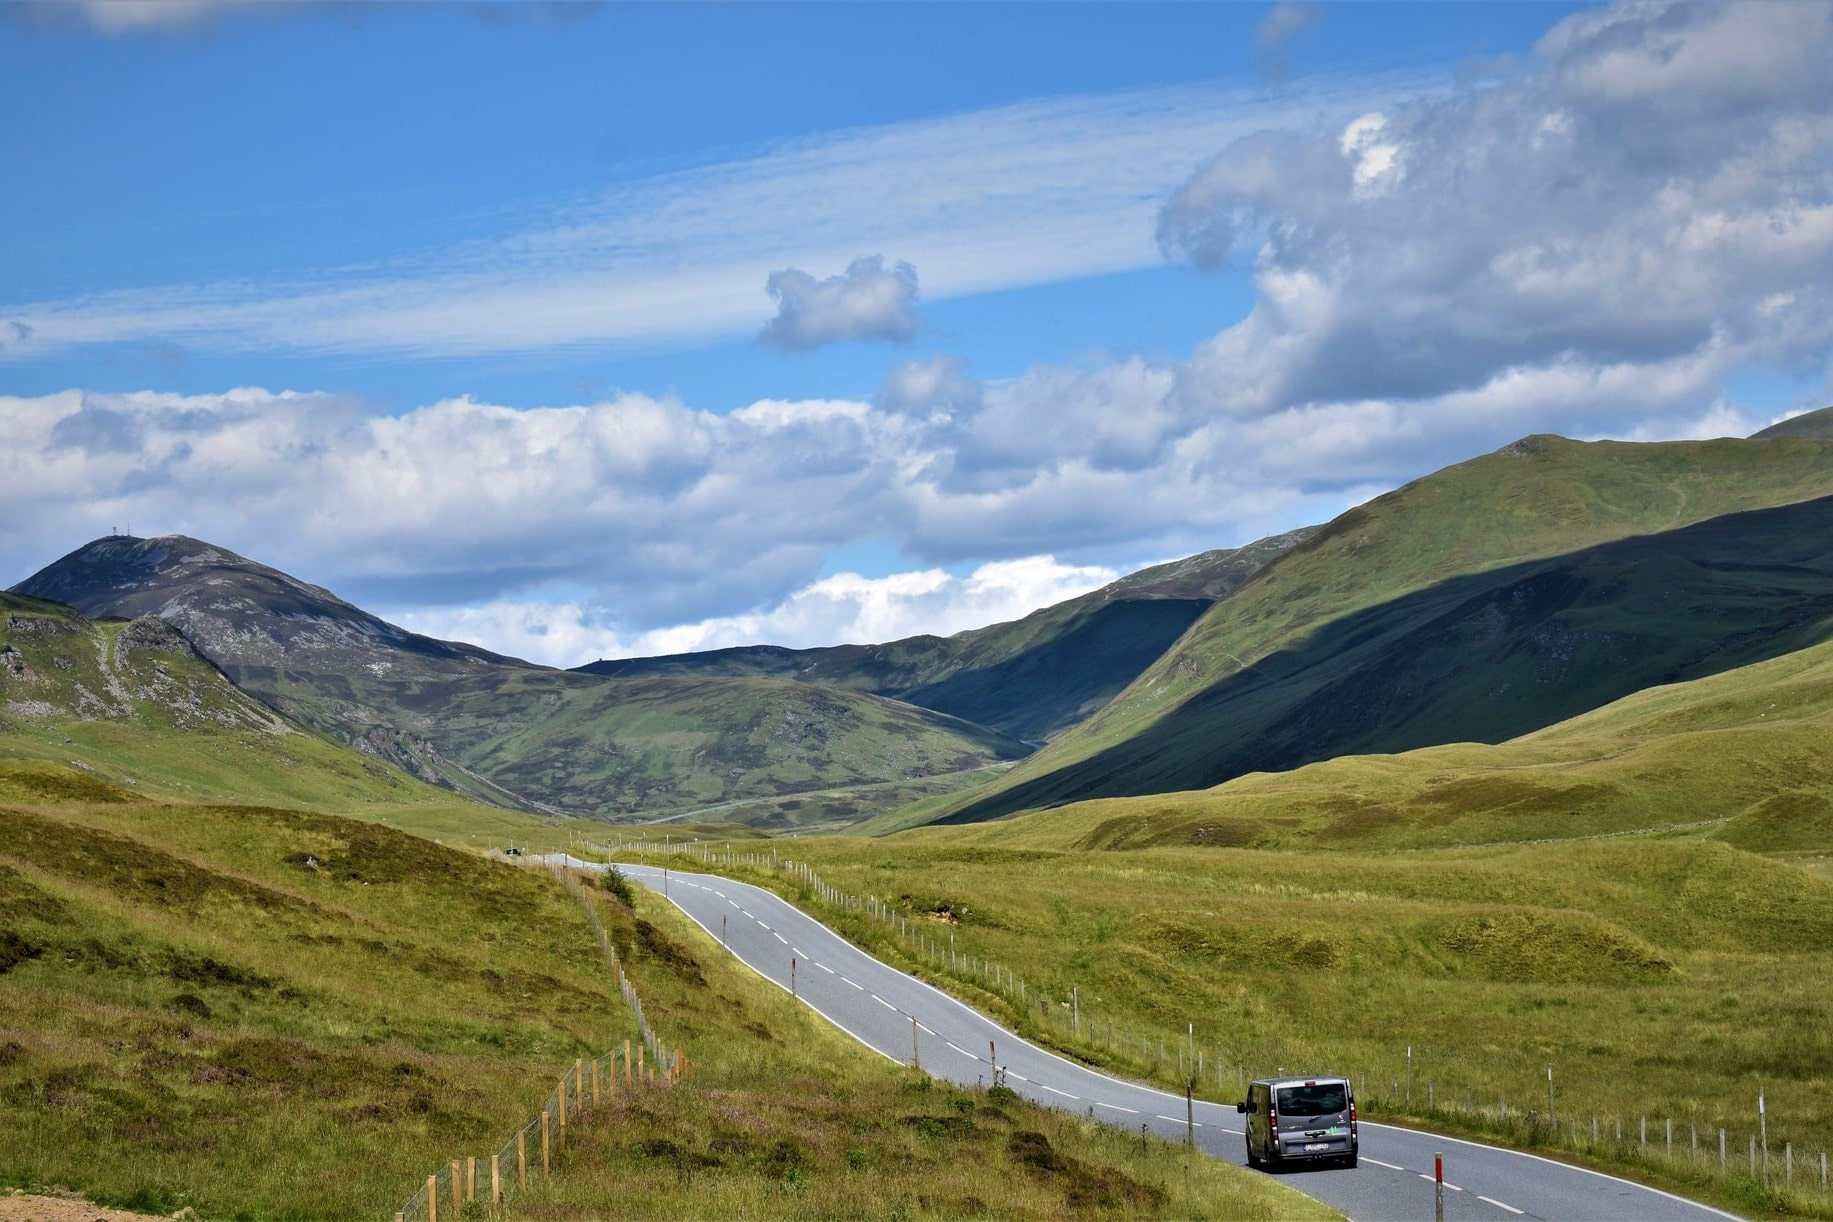 van-driving-on-road-through-mountains-in-cairngorms-national-park-scenic-drives-in-scotland